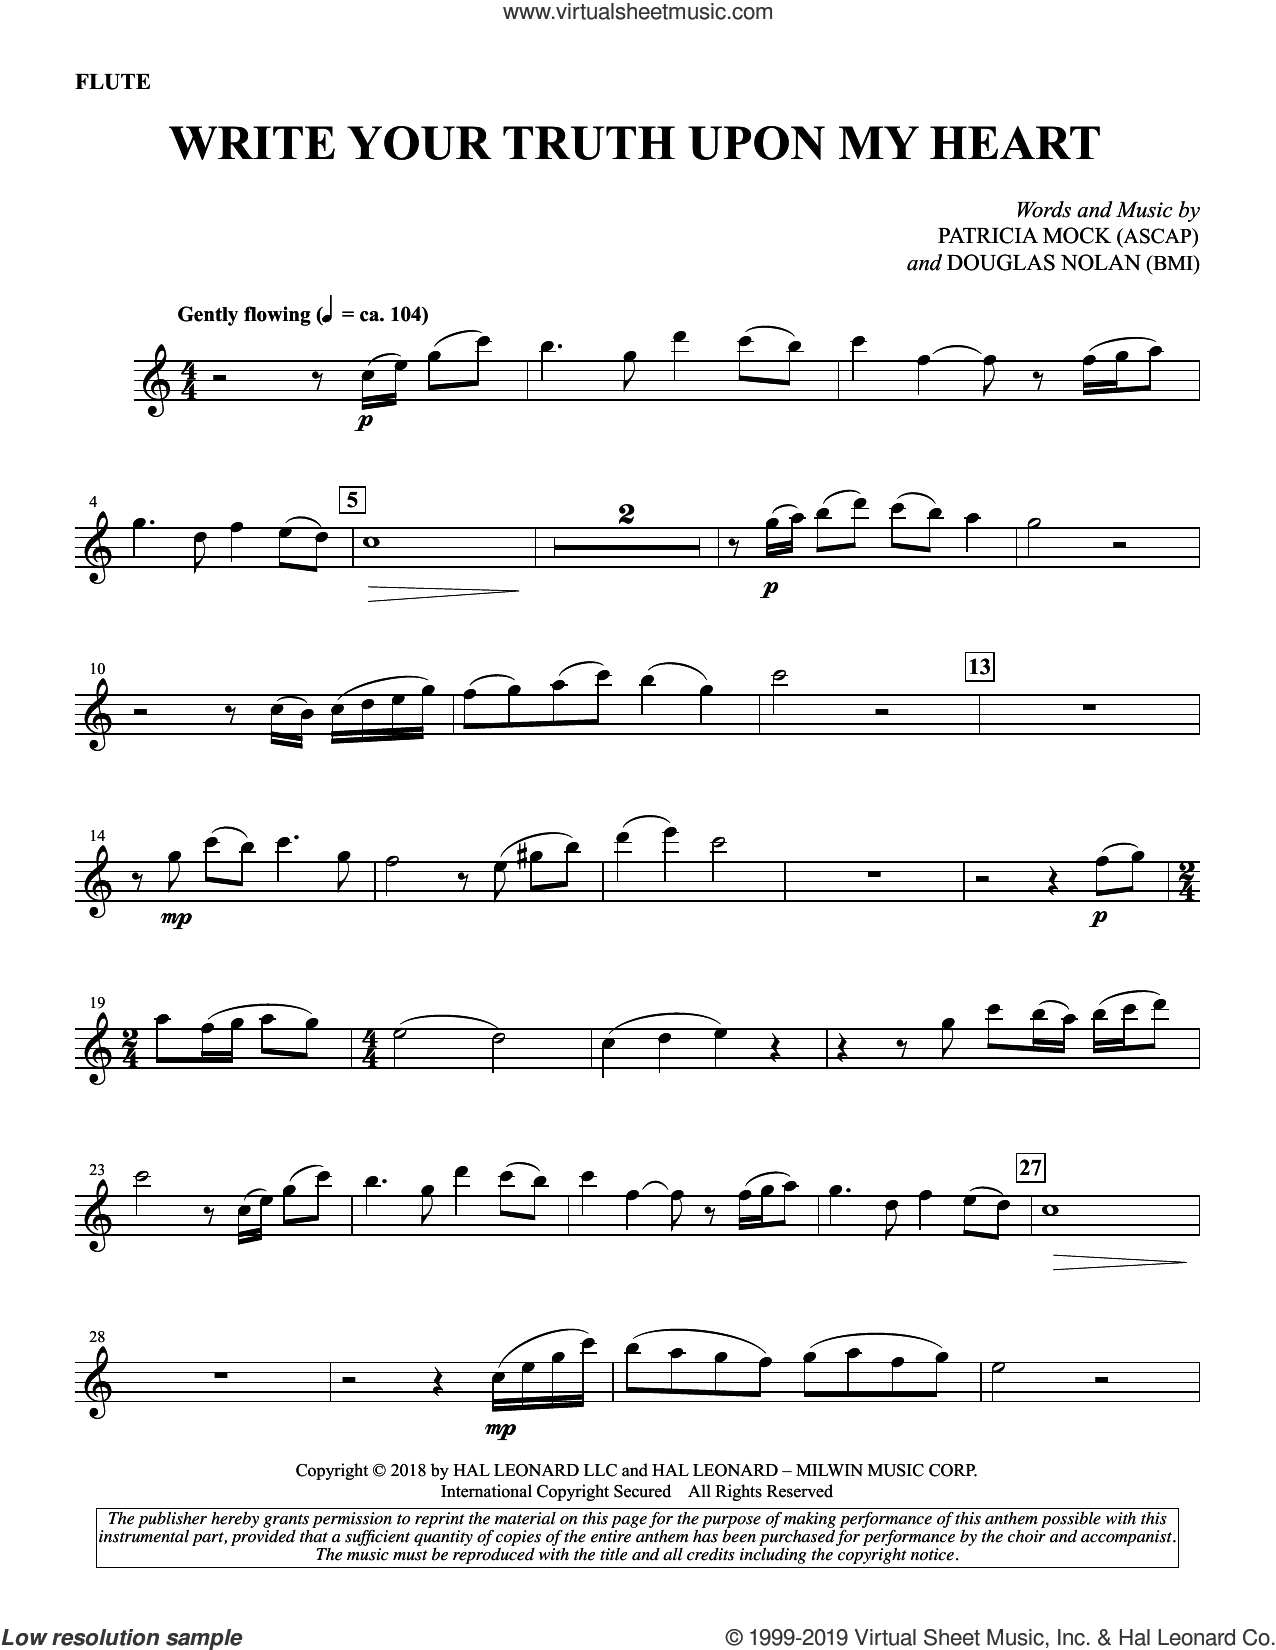 Write Your Truth Upon My Heart sheet music for choir by Patricia Mock & Douglas Nolan, intermediate skill level